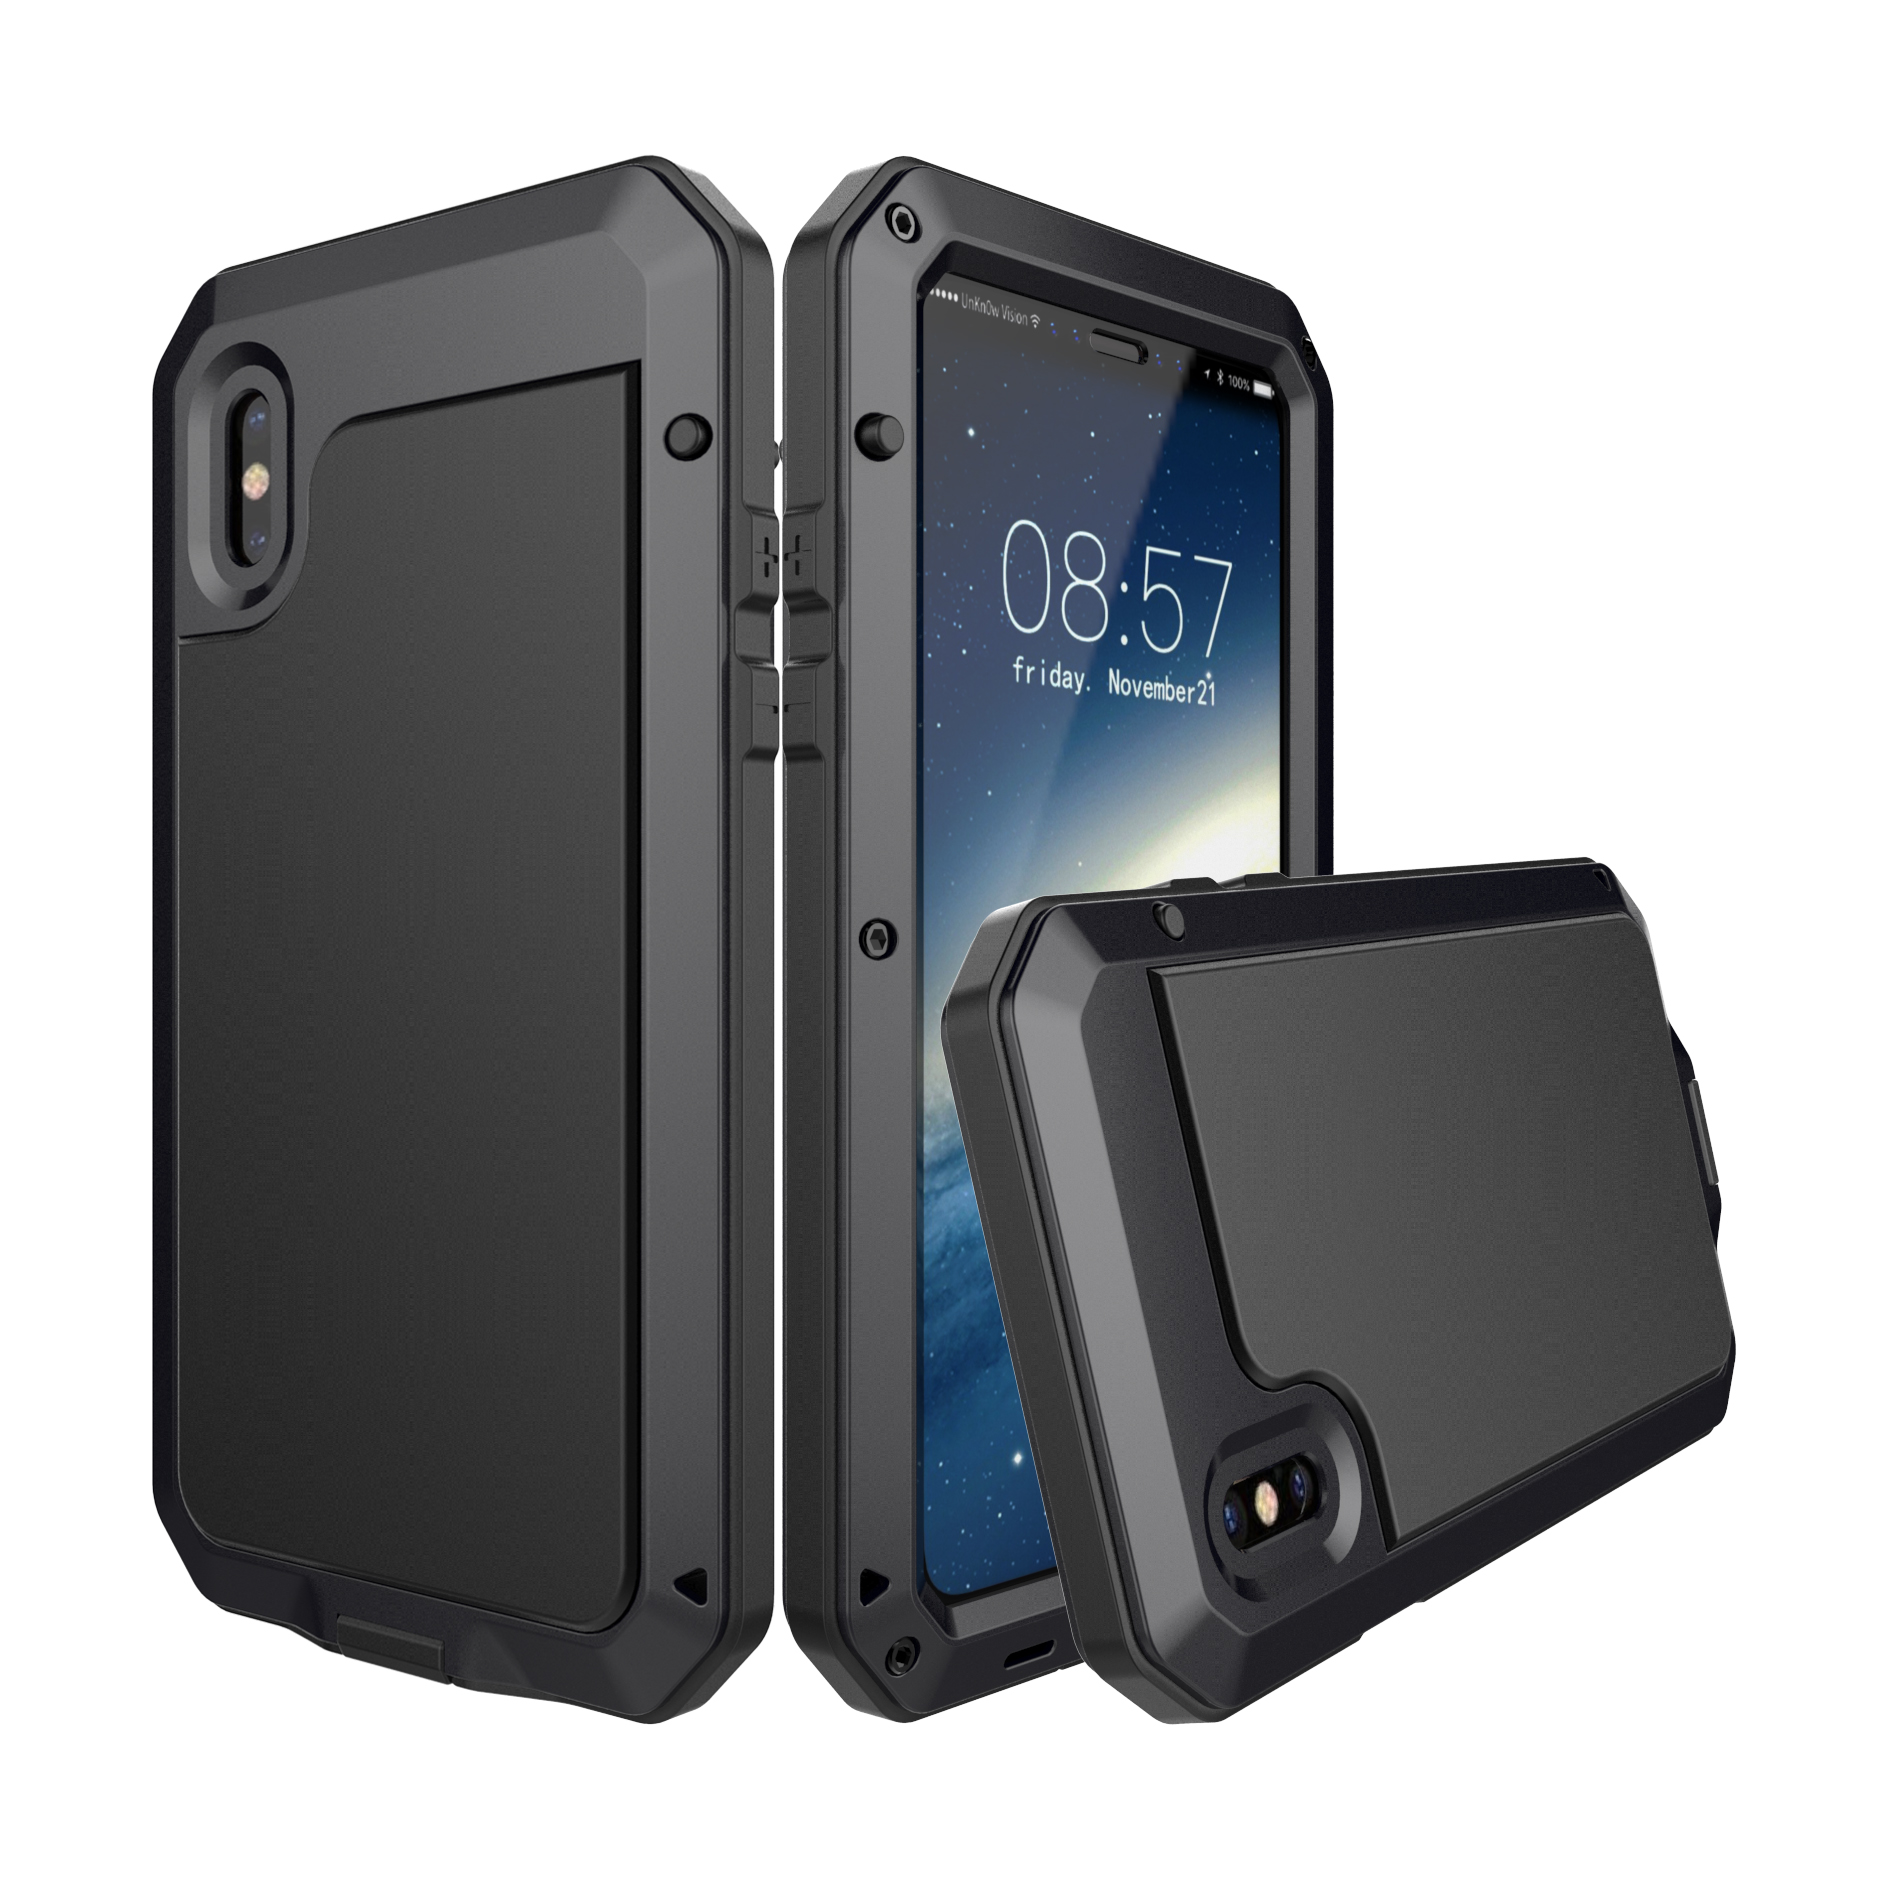 Aluminum Waterproof Shockproof Protective Case For iPho